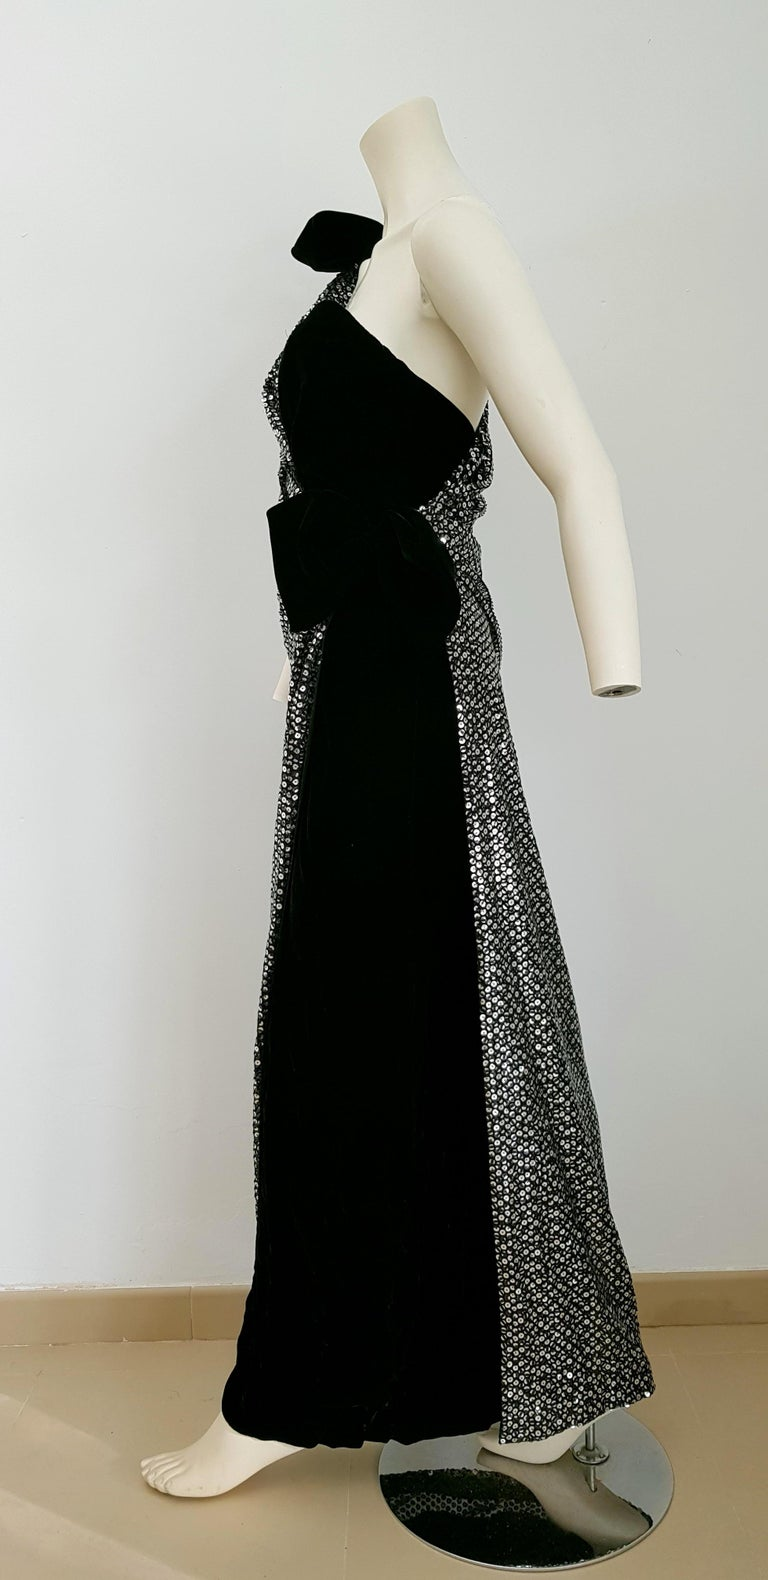 VALENTINO Haute Couture, sequins, silk velvet, black gown dress - Unworn, New For Sale 1